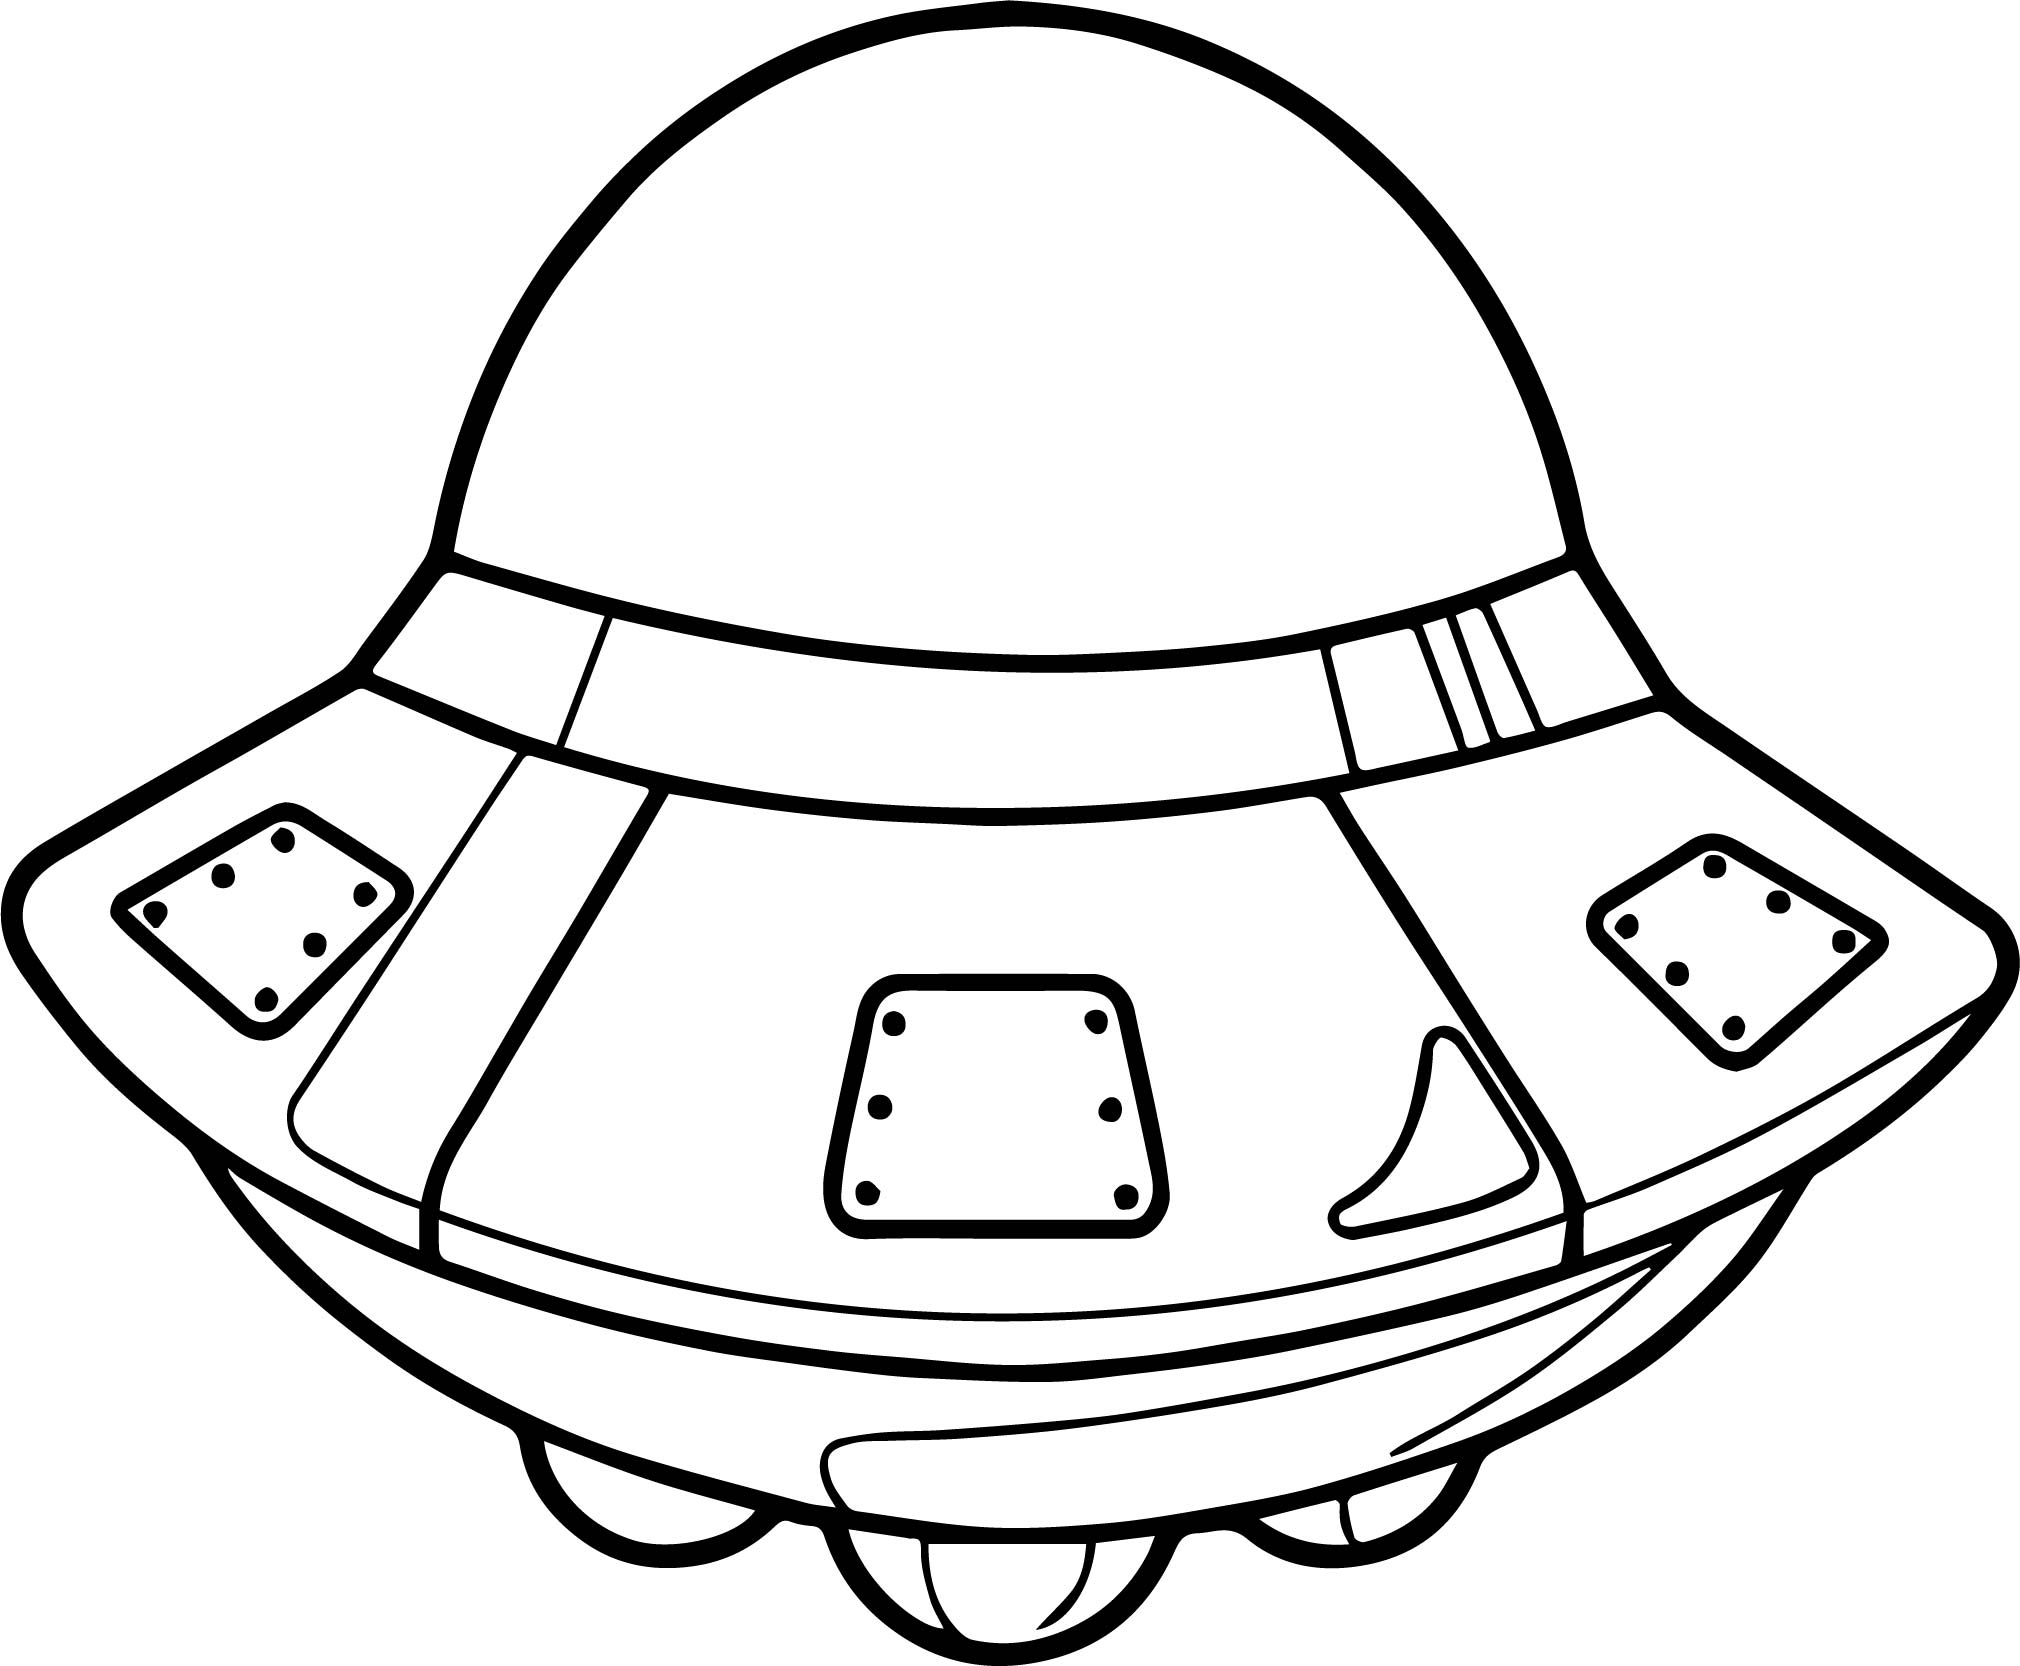 vehicle coloring pages - astronaut space vehicle coloring page